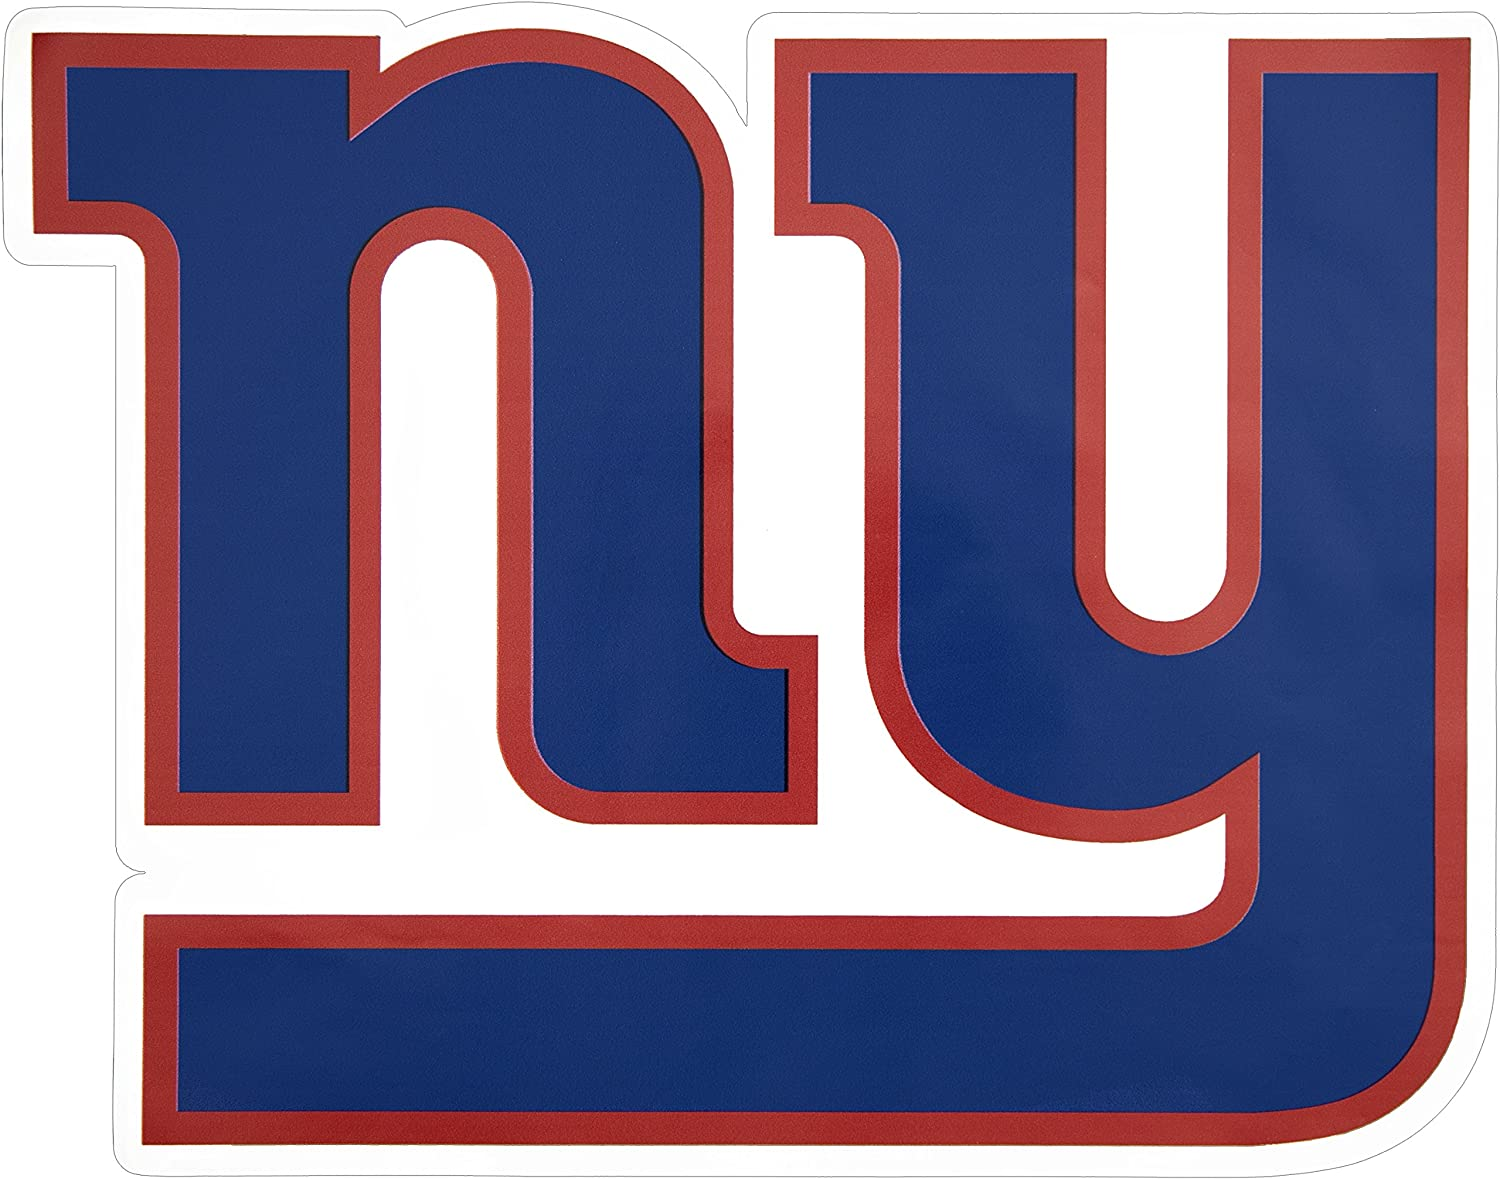 Applied Icon NFL New York Giants Outdoor Large Primary Logo Graphic Decal